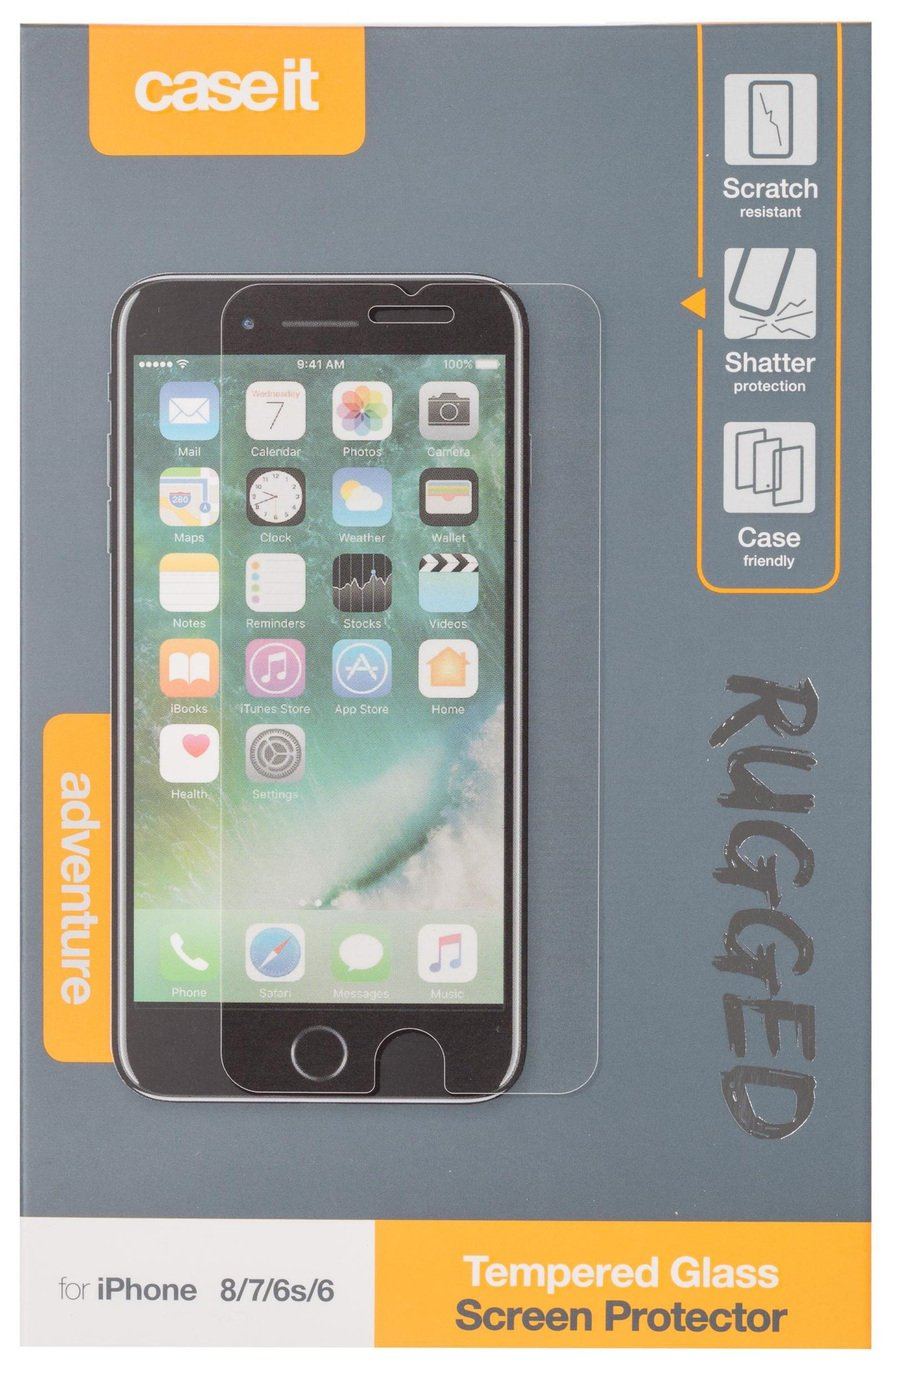 Case It Rugged Apple iPhone 8/7/6S/6 Screen Protector